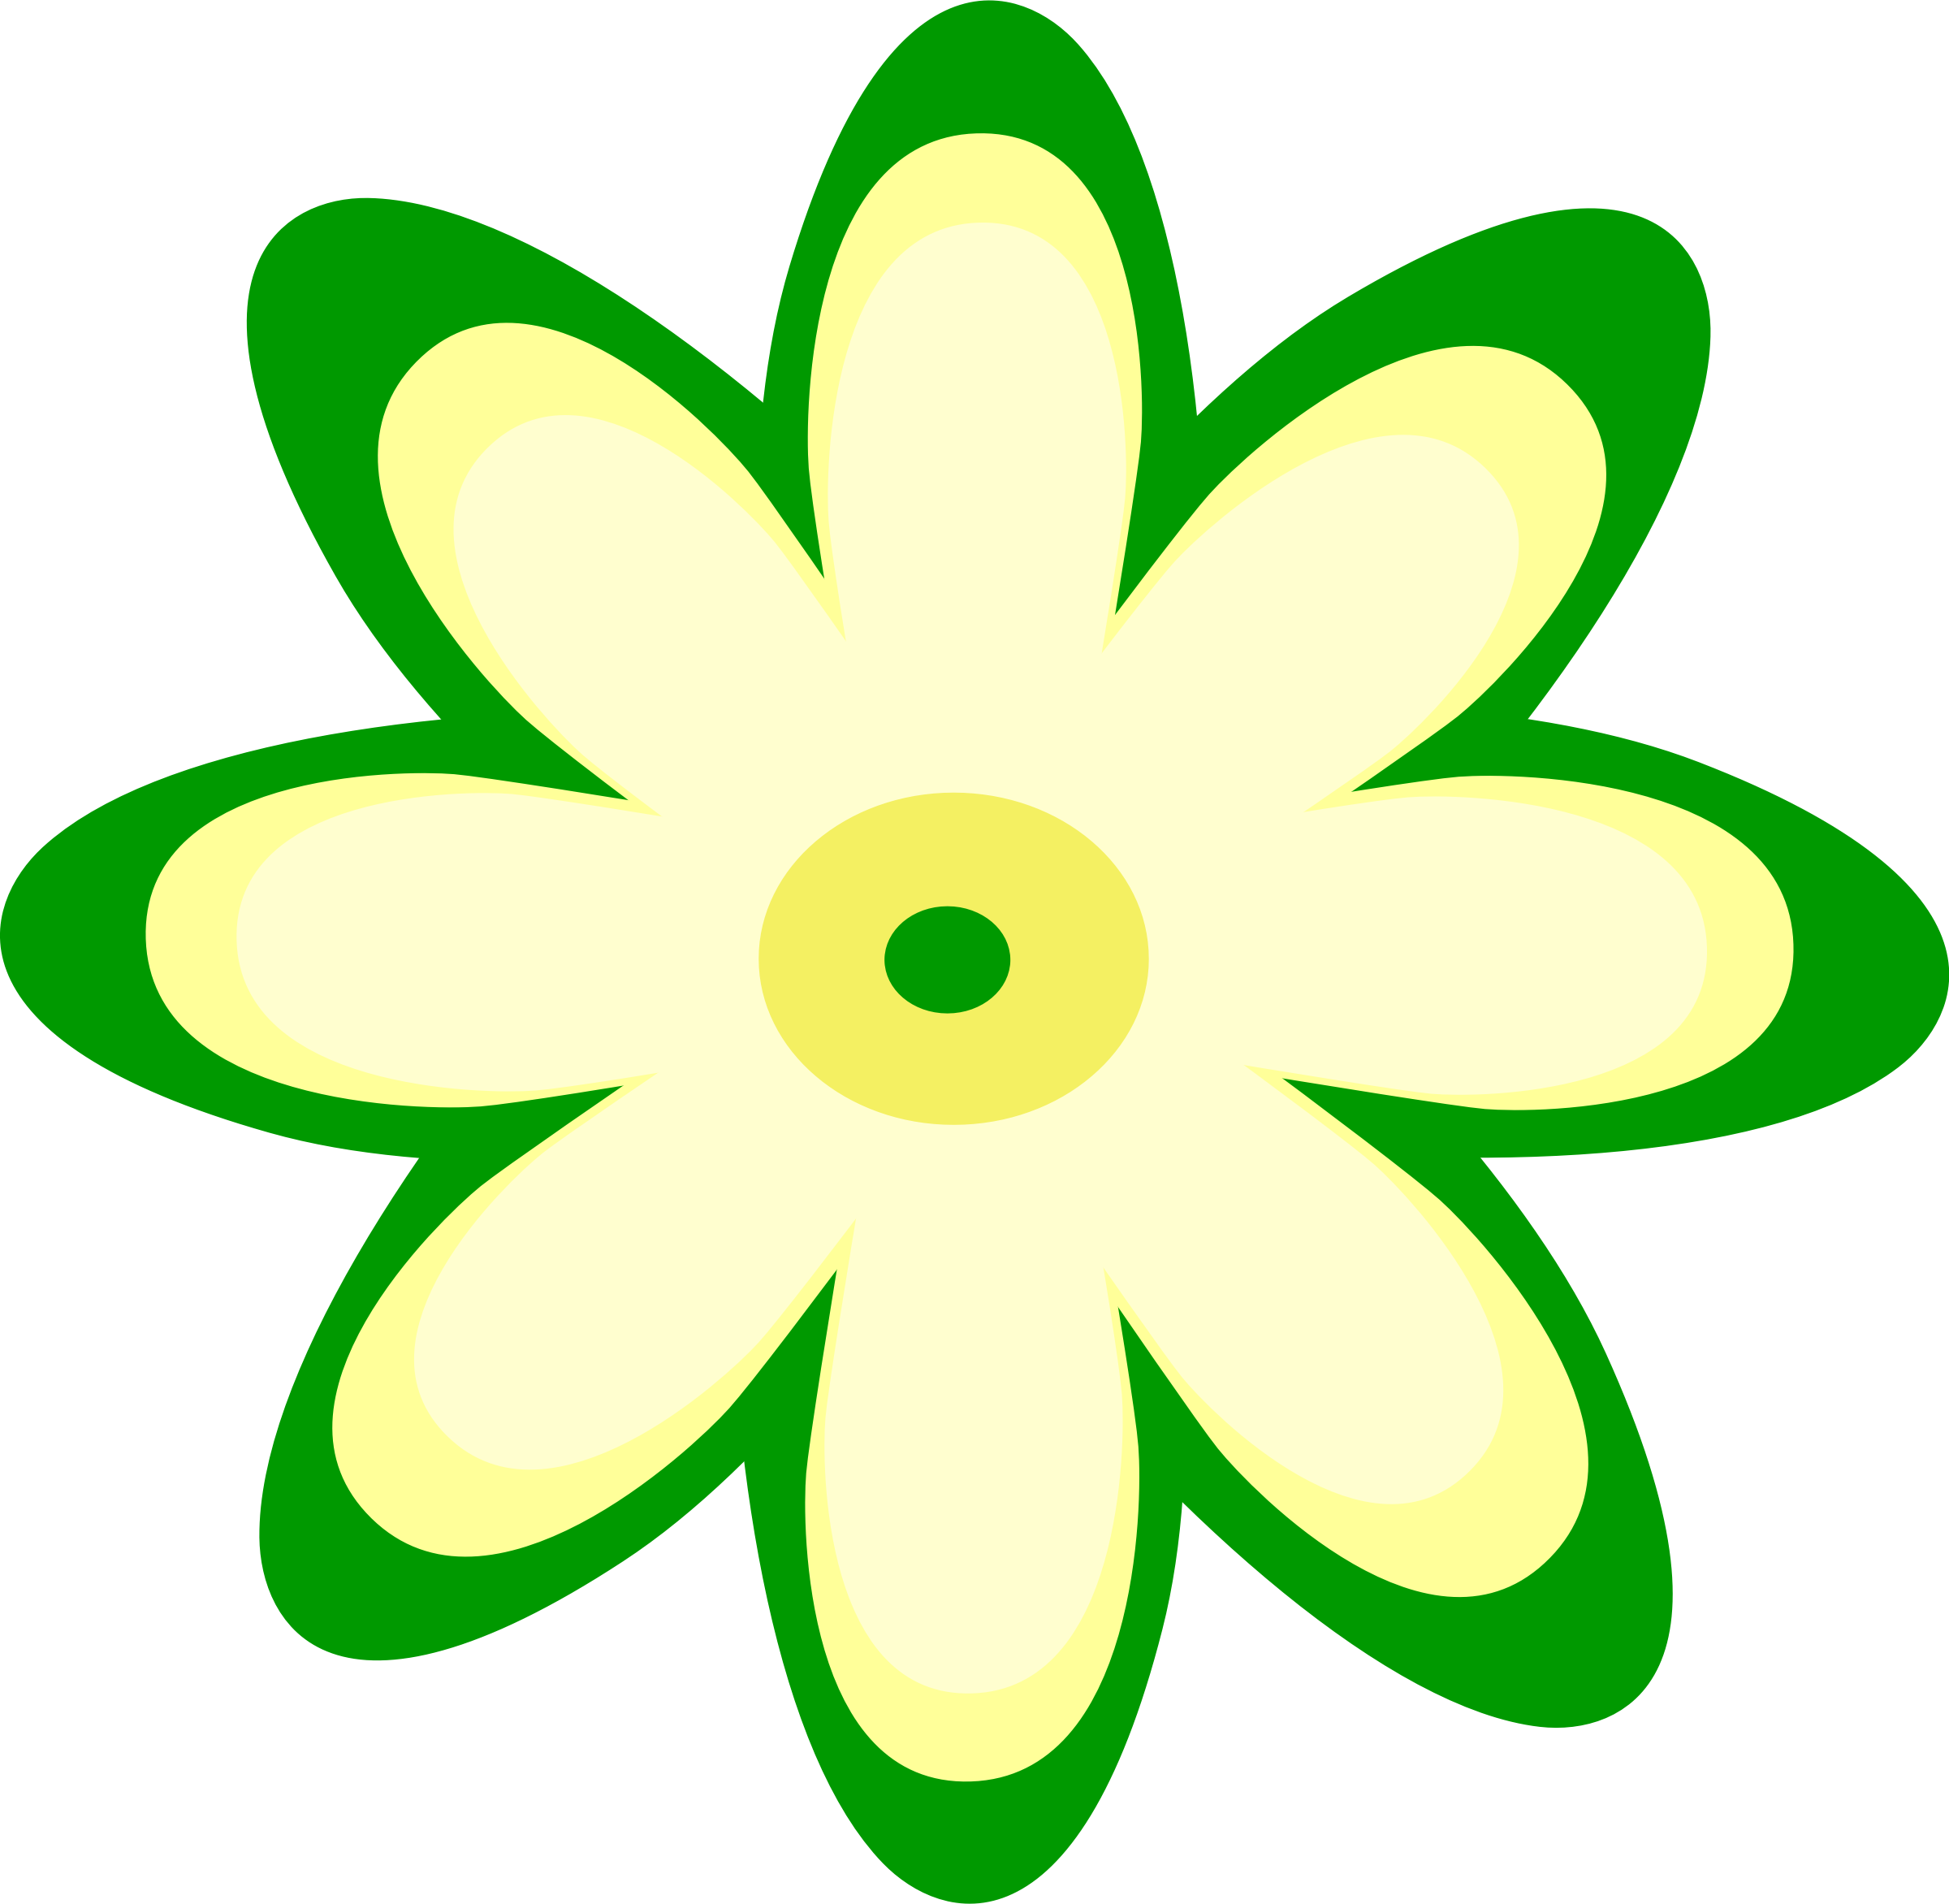 Lime green flower clipart royalty free stock Big Flower Clipart at GetDrawings.com | Free for personal use Big ... royalty free stock